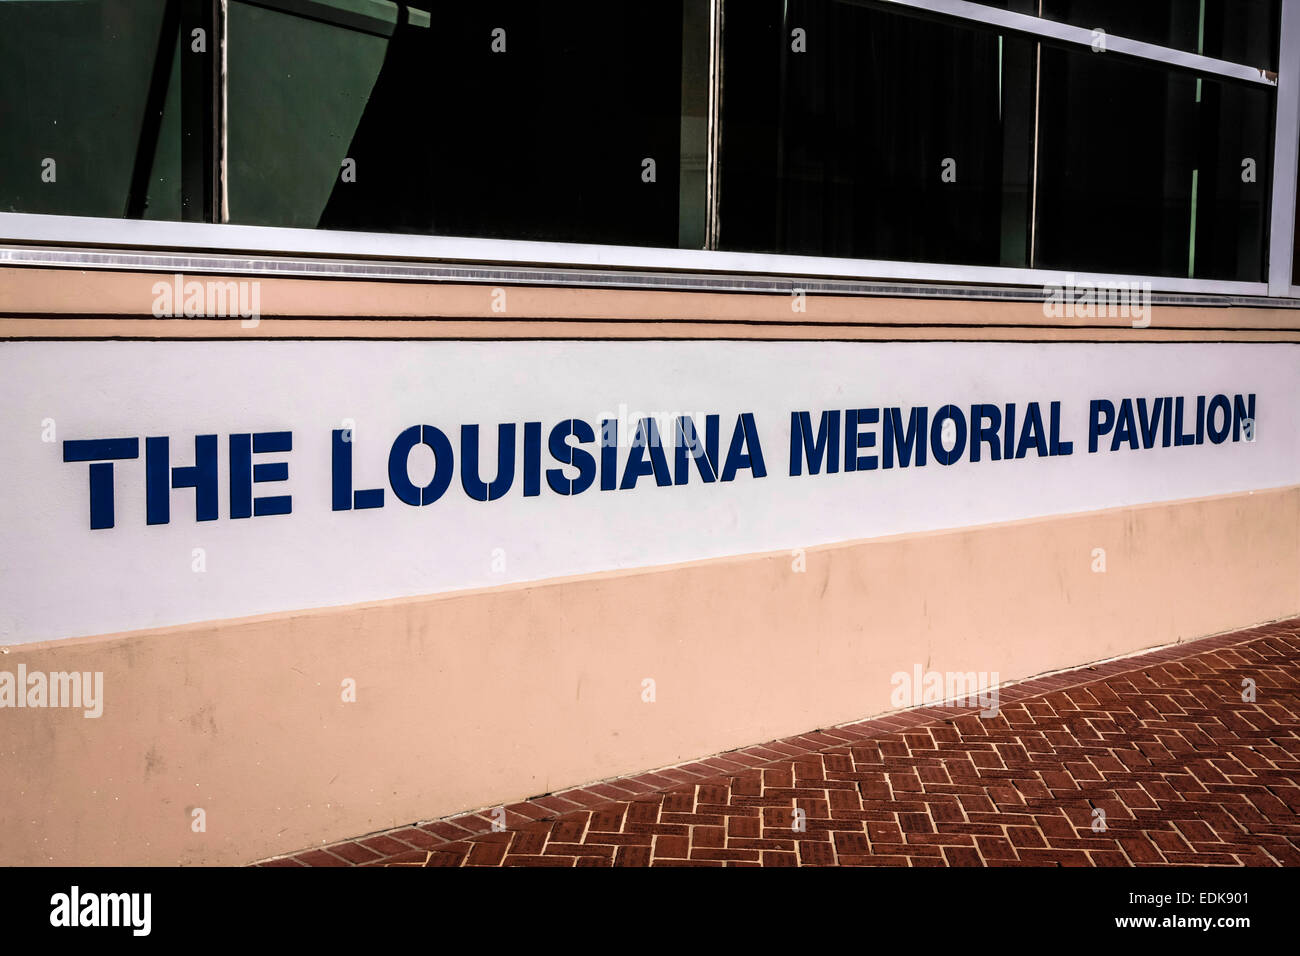 The Louisiana Memorial Pavilion, part of the National WWII Museum in New Orleans LA - Stock Image